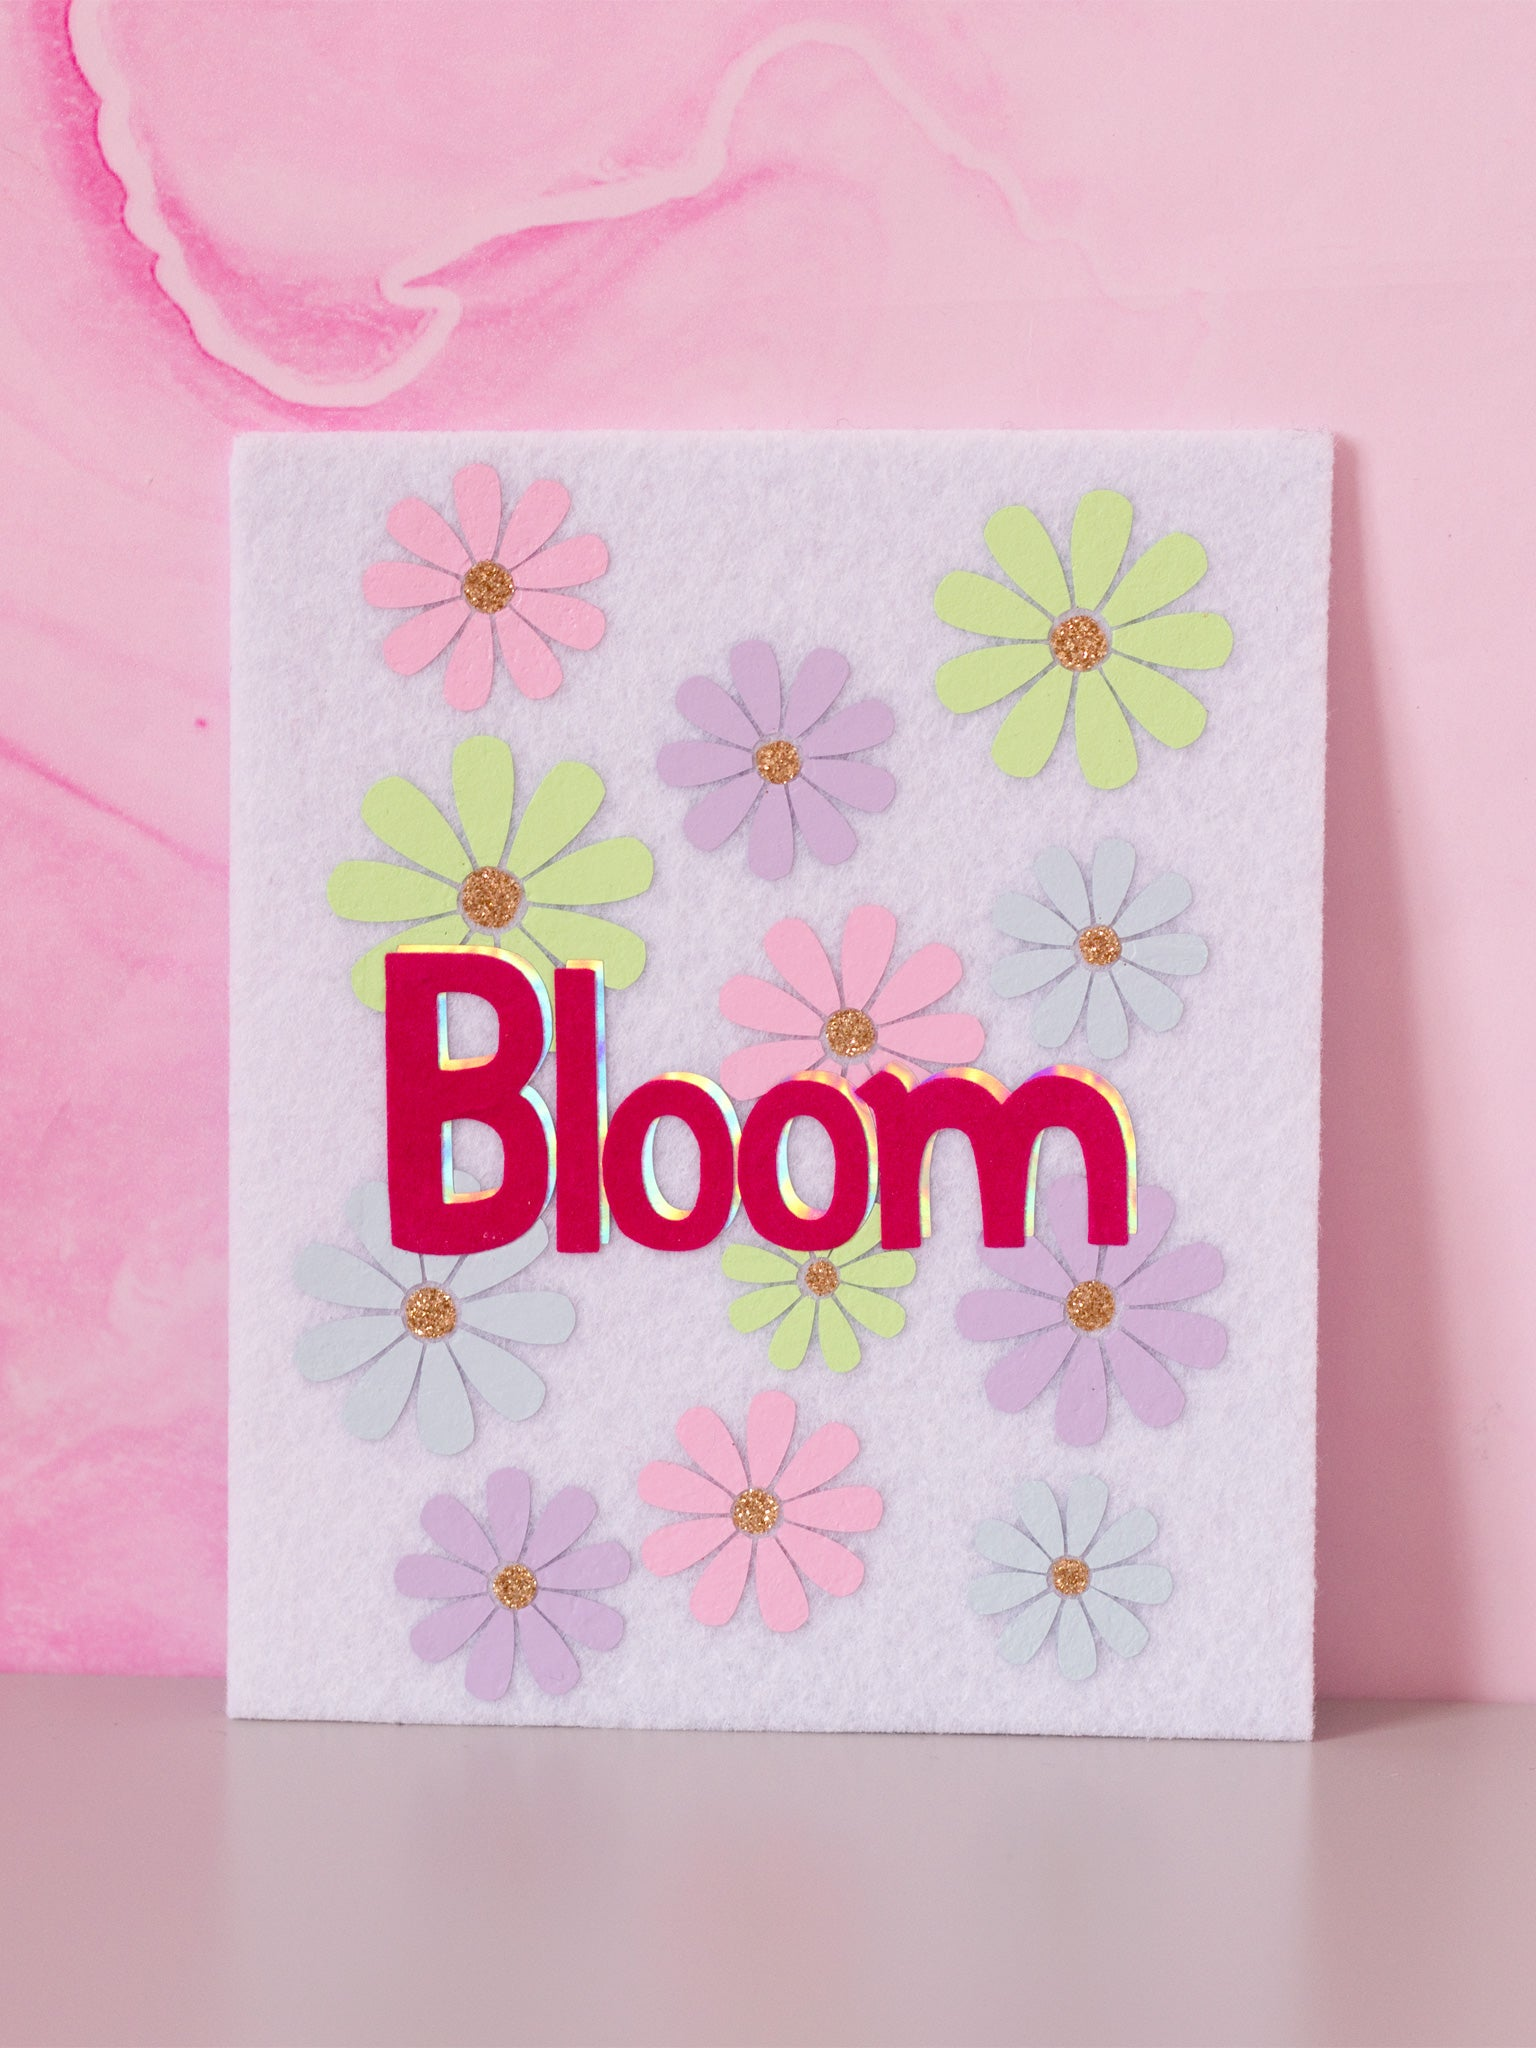 bloom felt wall art